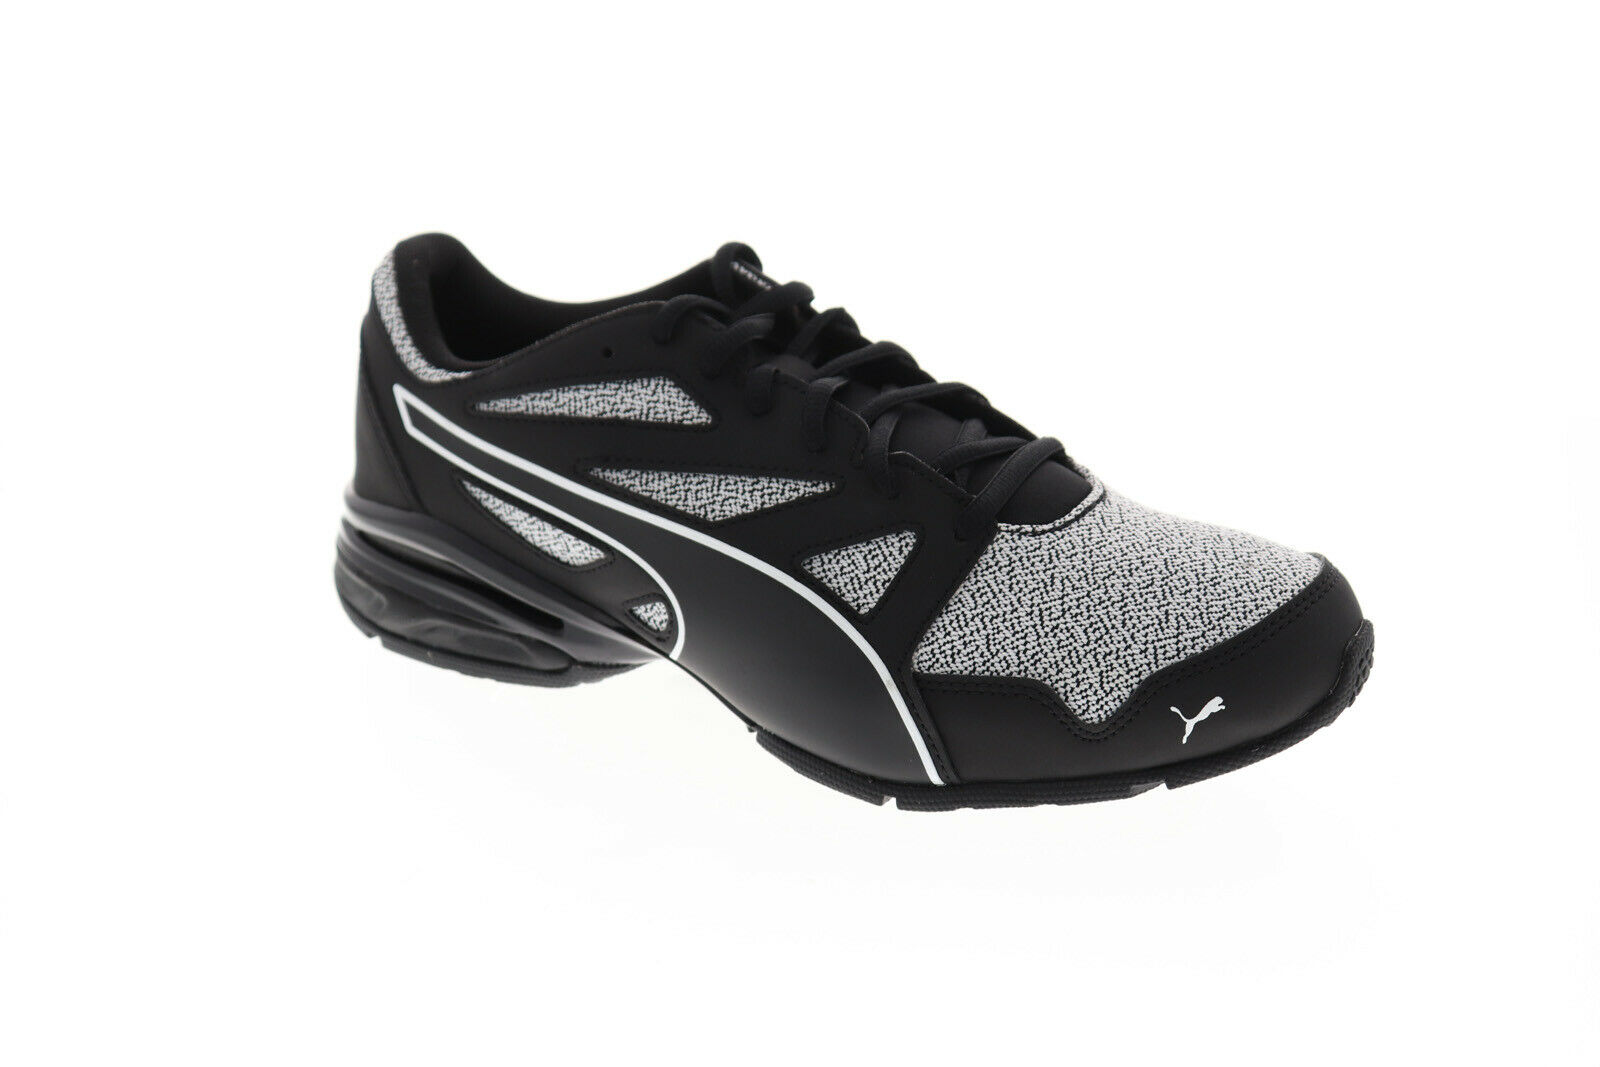 Puma Tazon Modern Pebble 19249002 Mens Black Low Top Athletic Gym Running Shoes